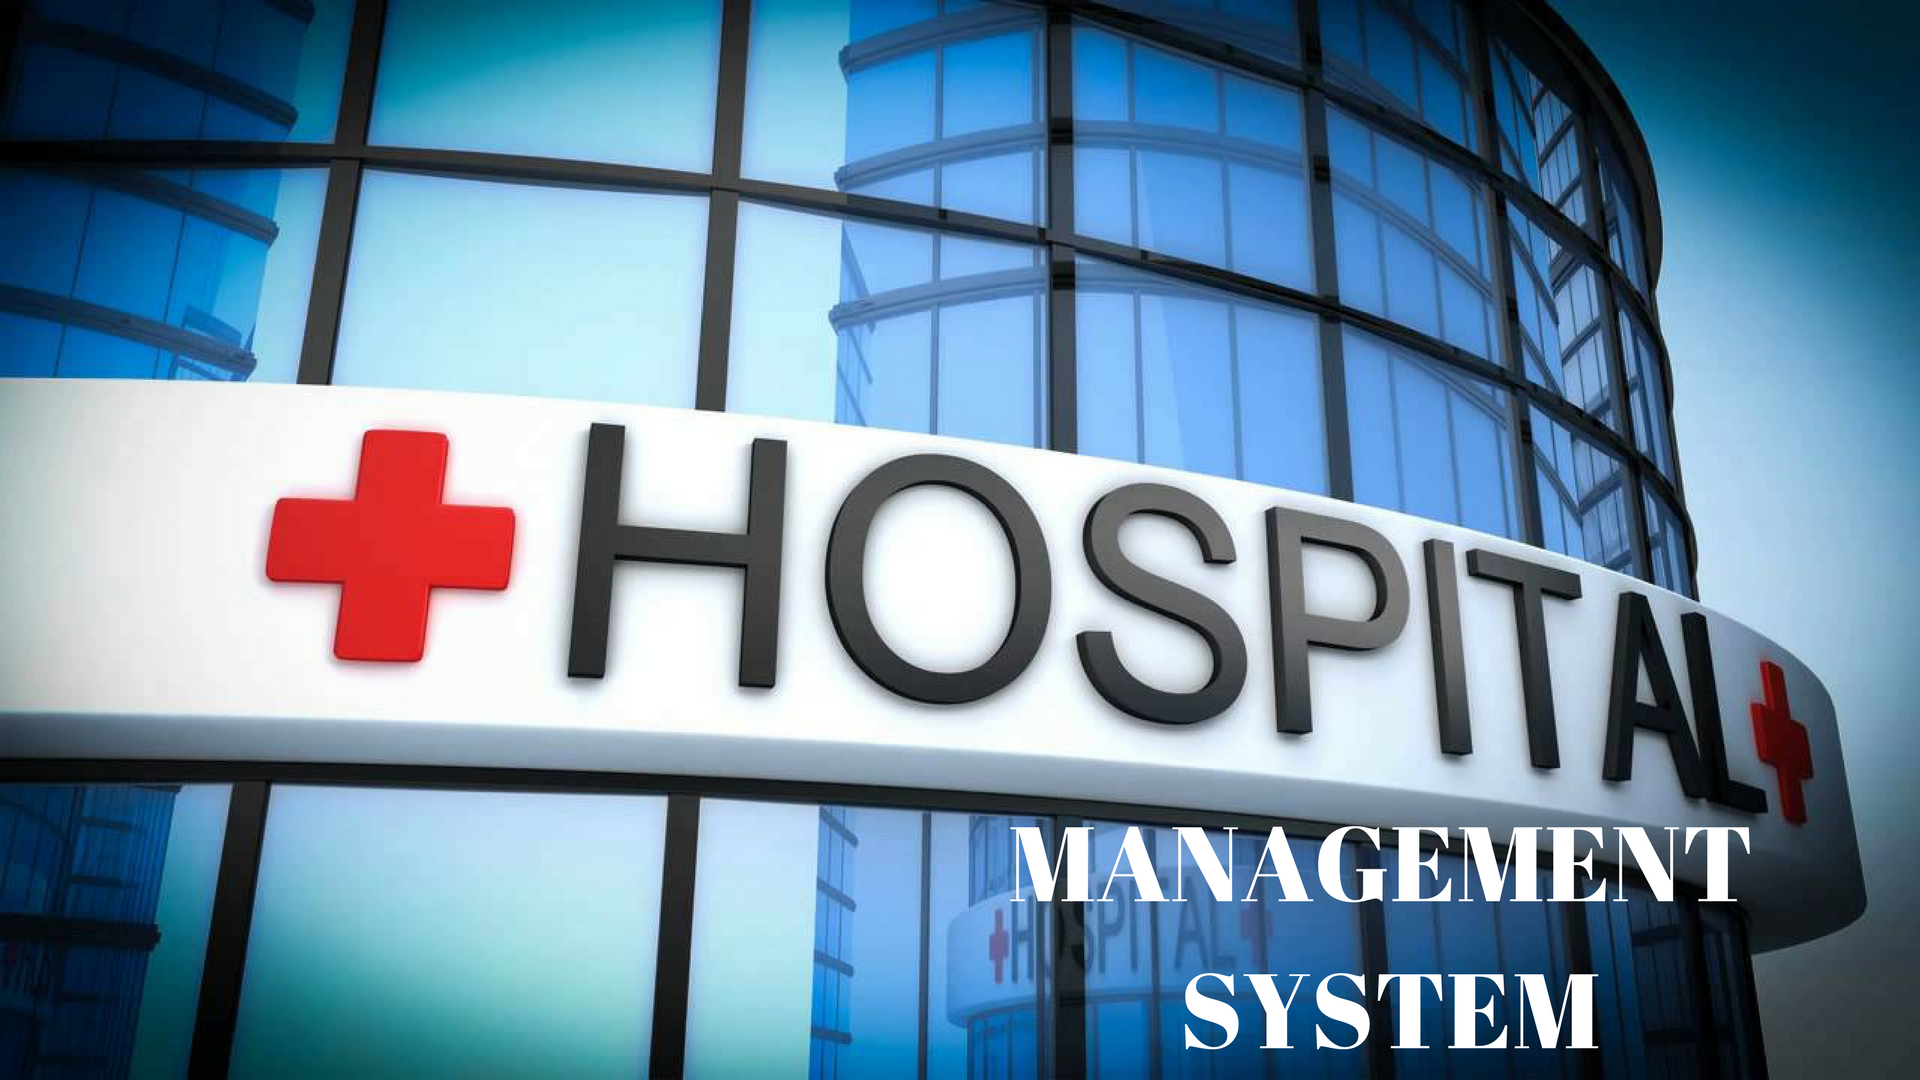 Hospital PNG HD Images - 122982